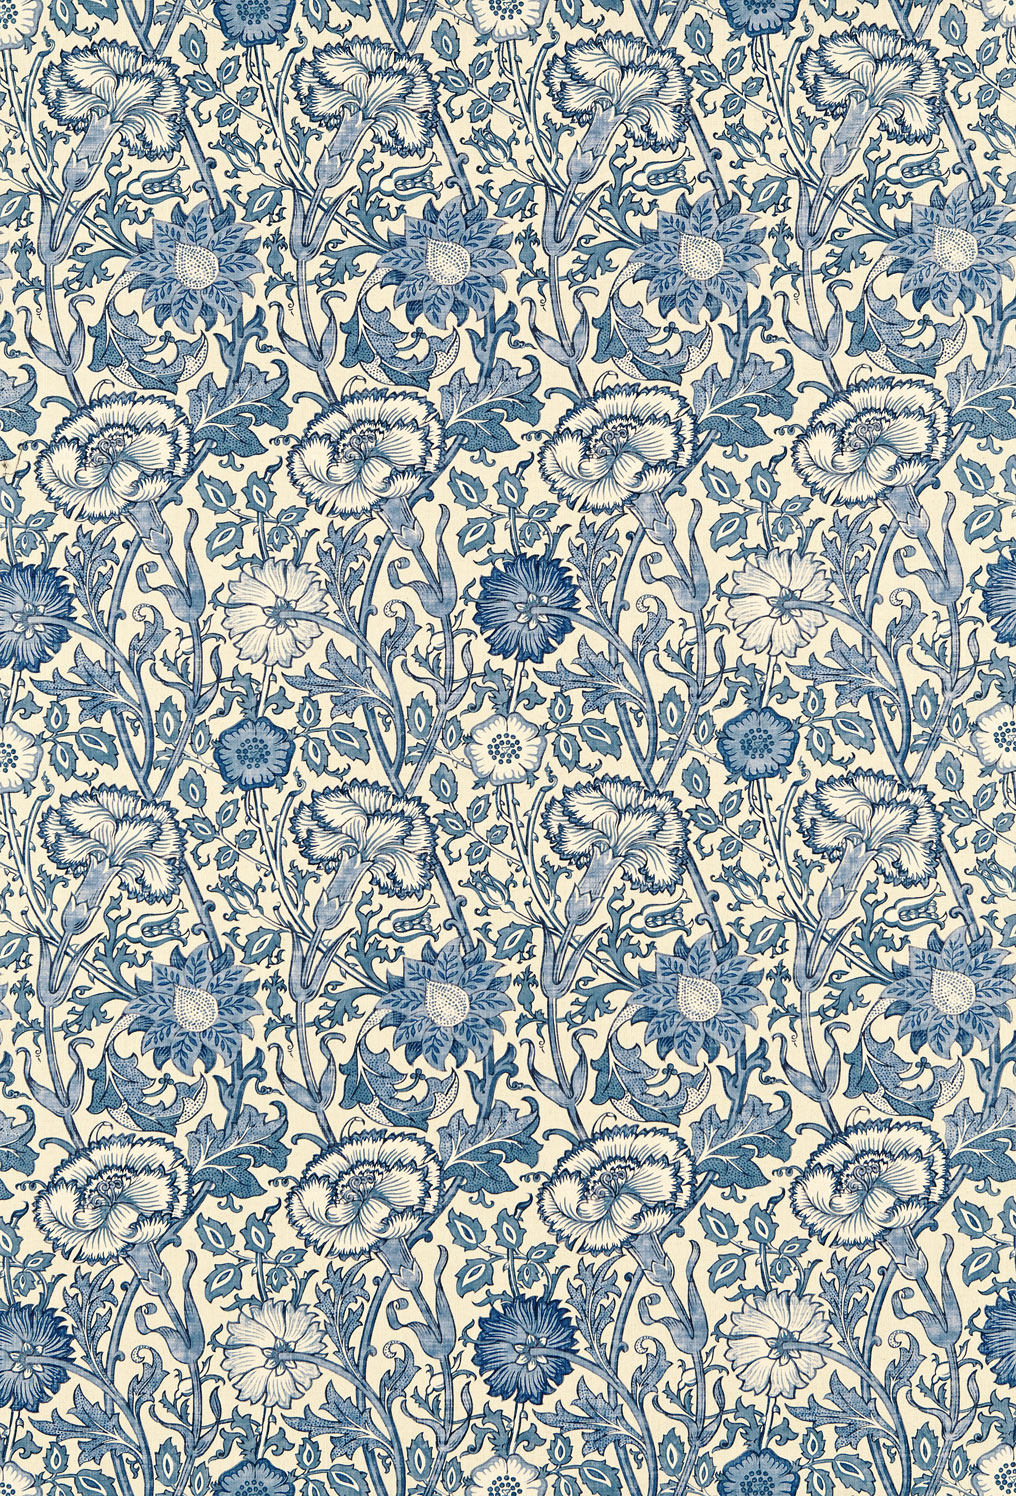 Englische tapetenmuster william morris stil tapeten online for Tapete muster blau